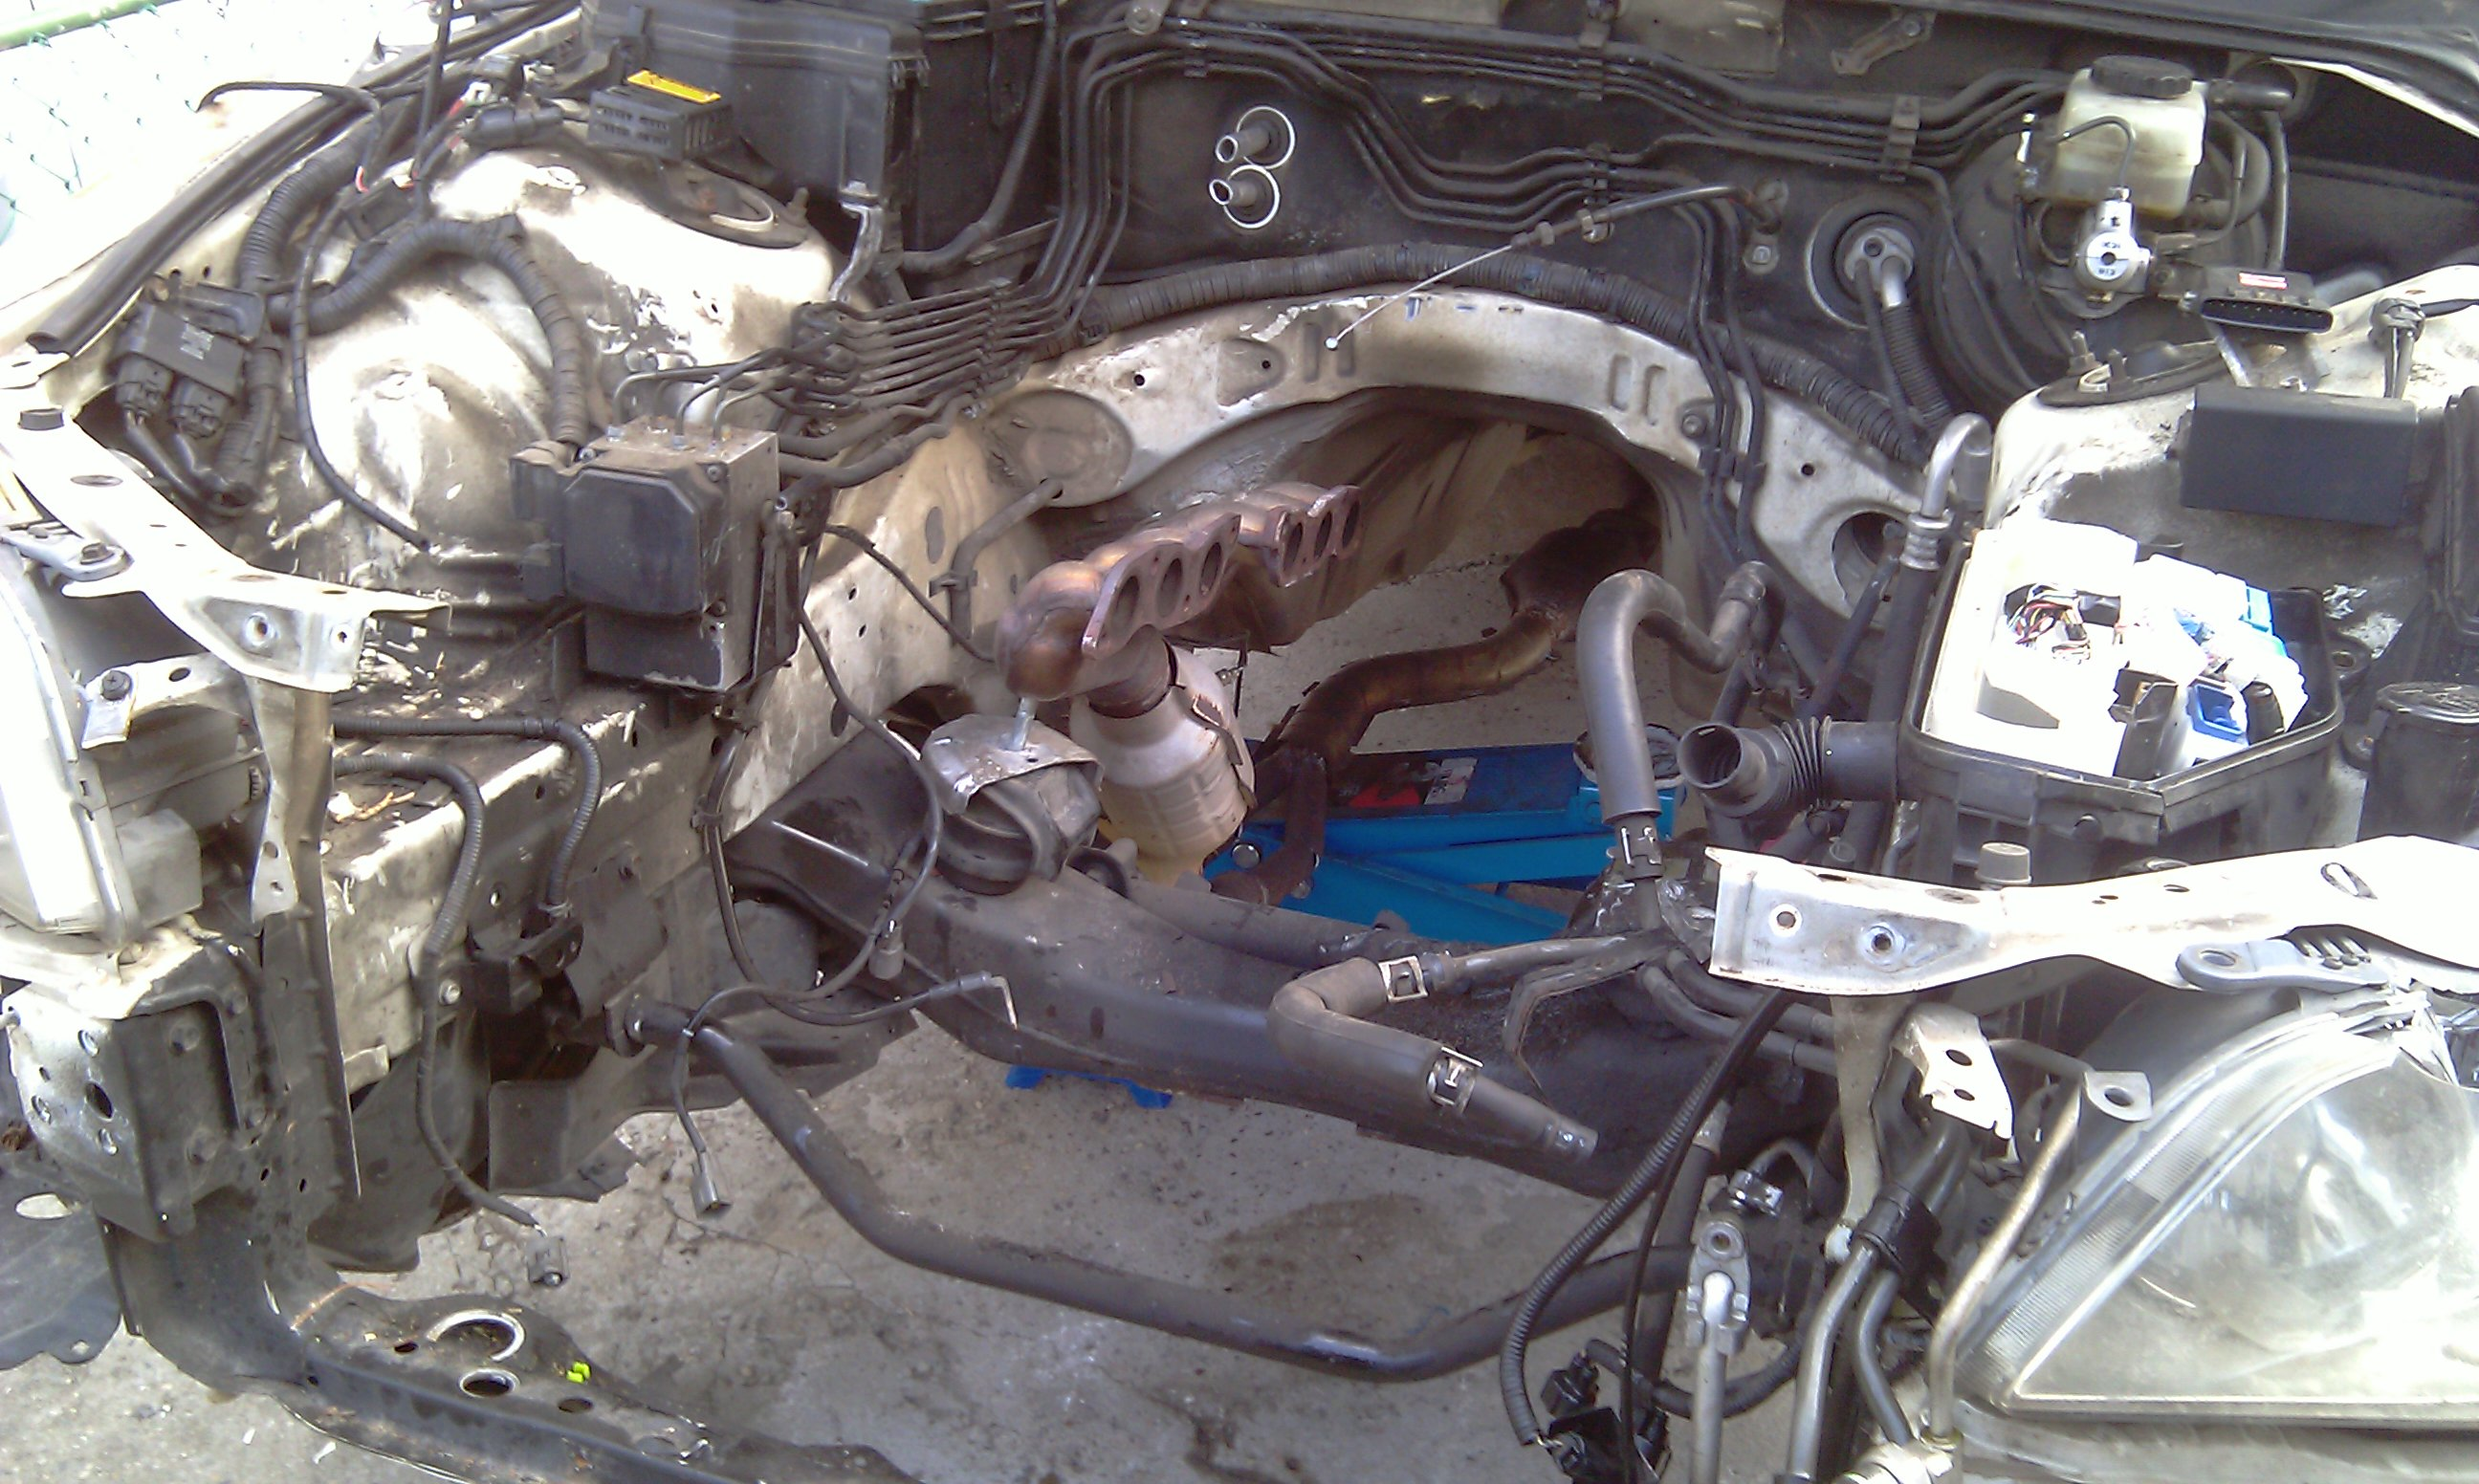 Swap from 1.5jz supra to is300 body-imag0268.jpg